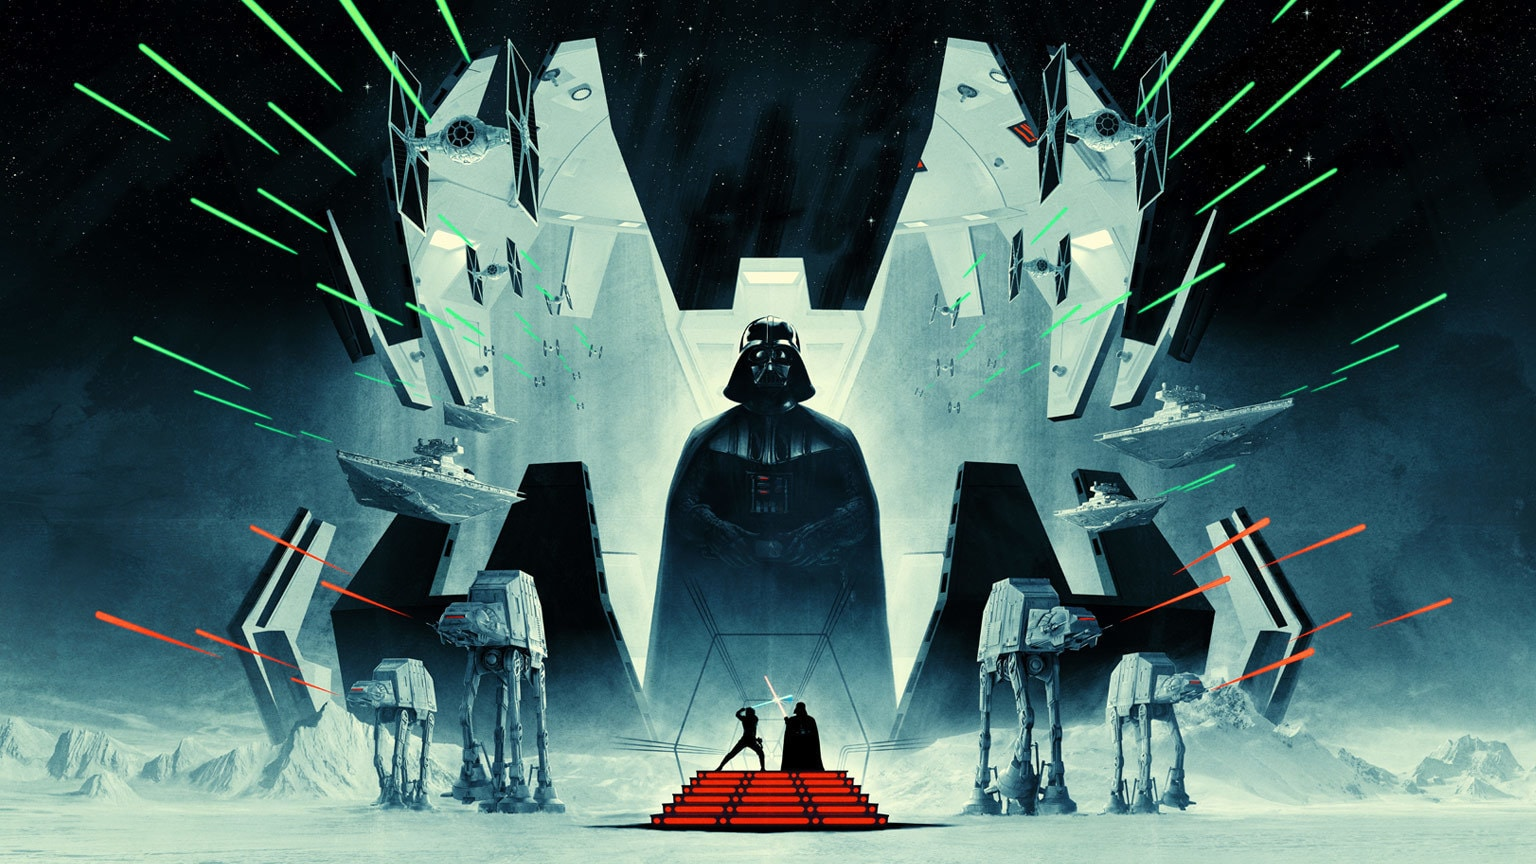 Empire at 40 | Matt Ferguson Discusses the Making of His Incredible Star Wars: The Empire Strikes Back Poster